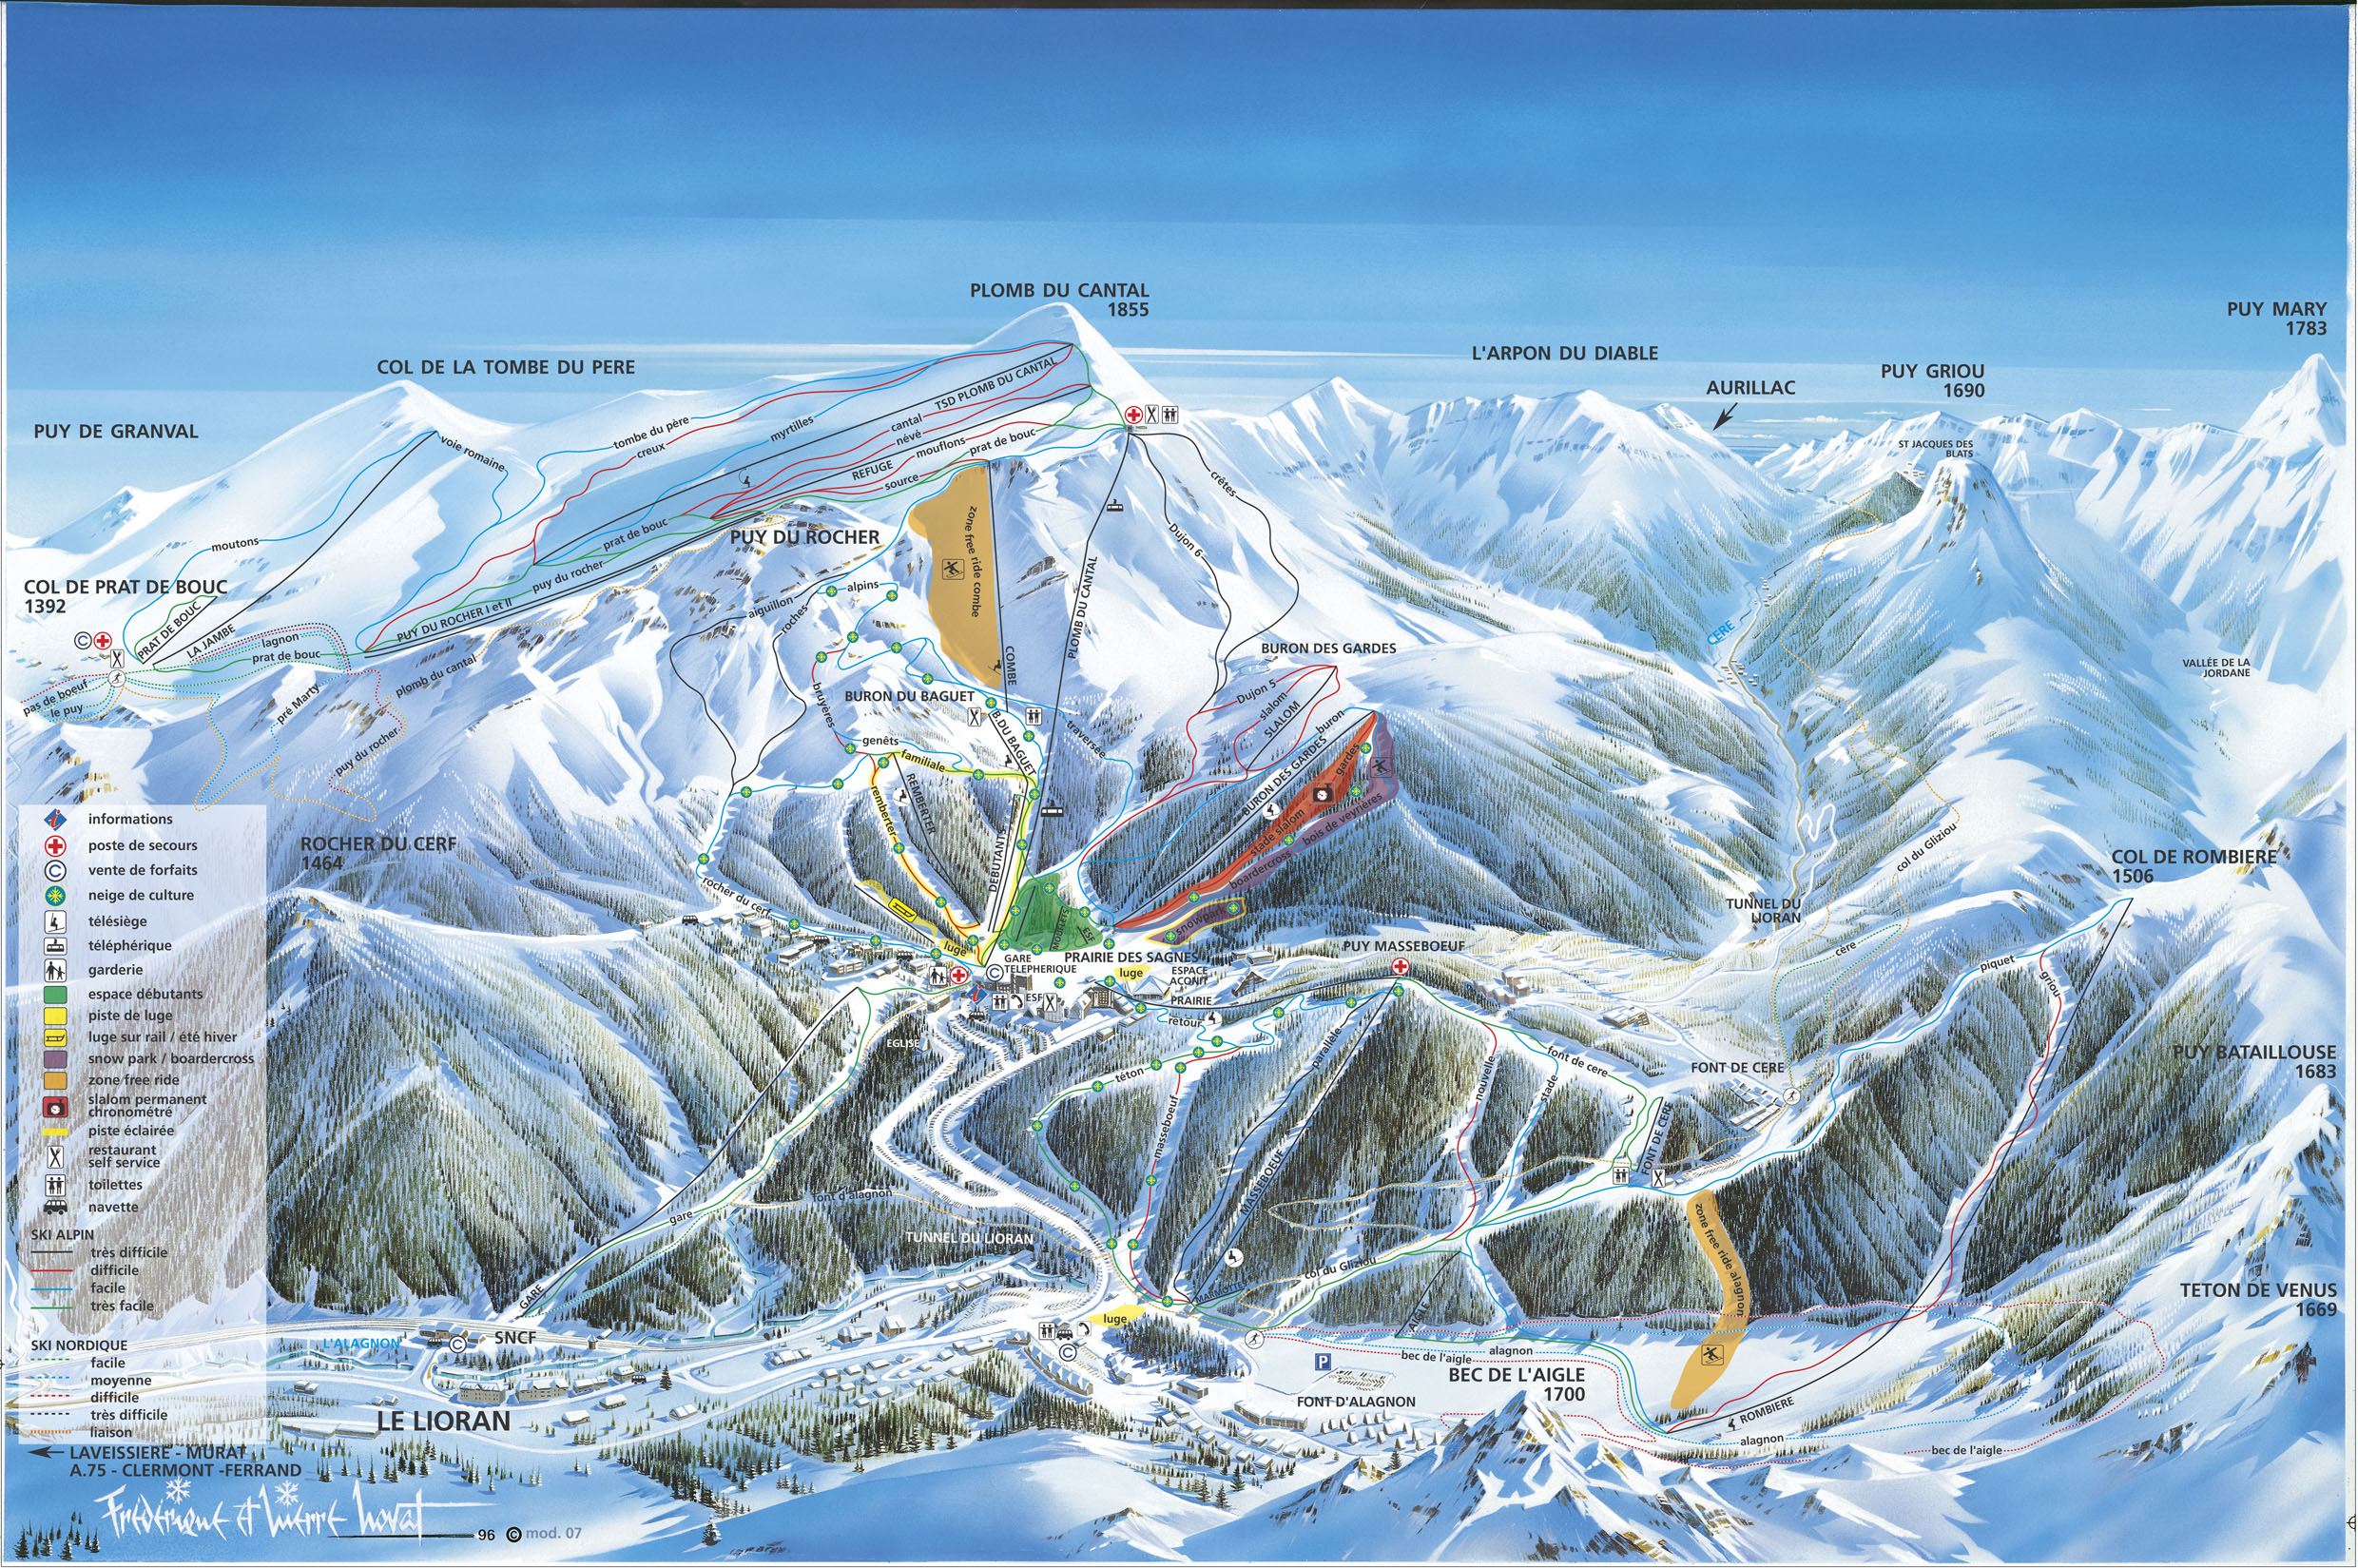 Station de ski le lioran massif central cantal vacances - Office tourisme le lioran ...